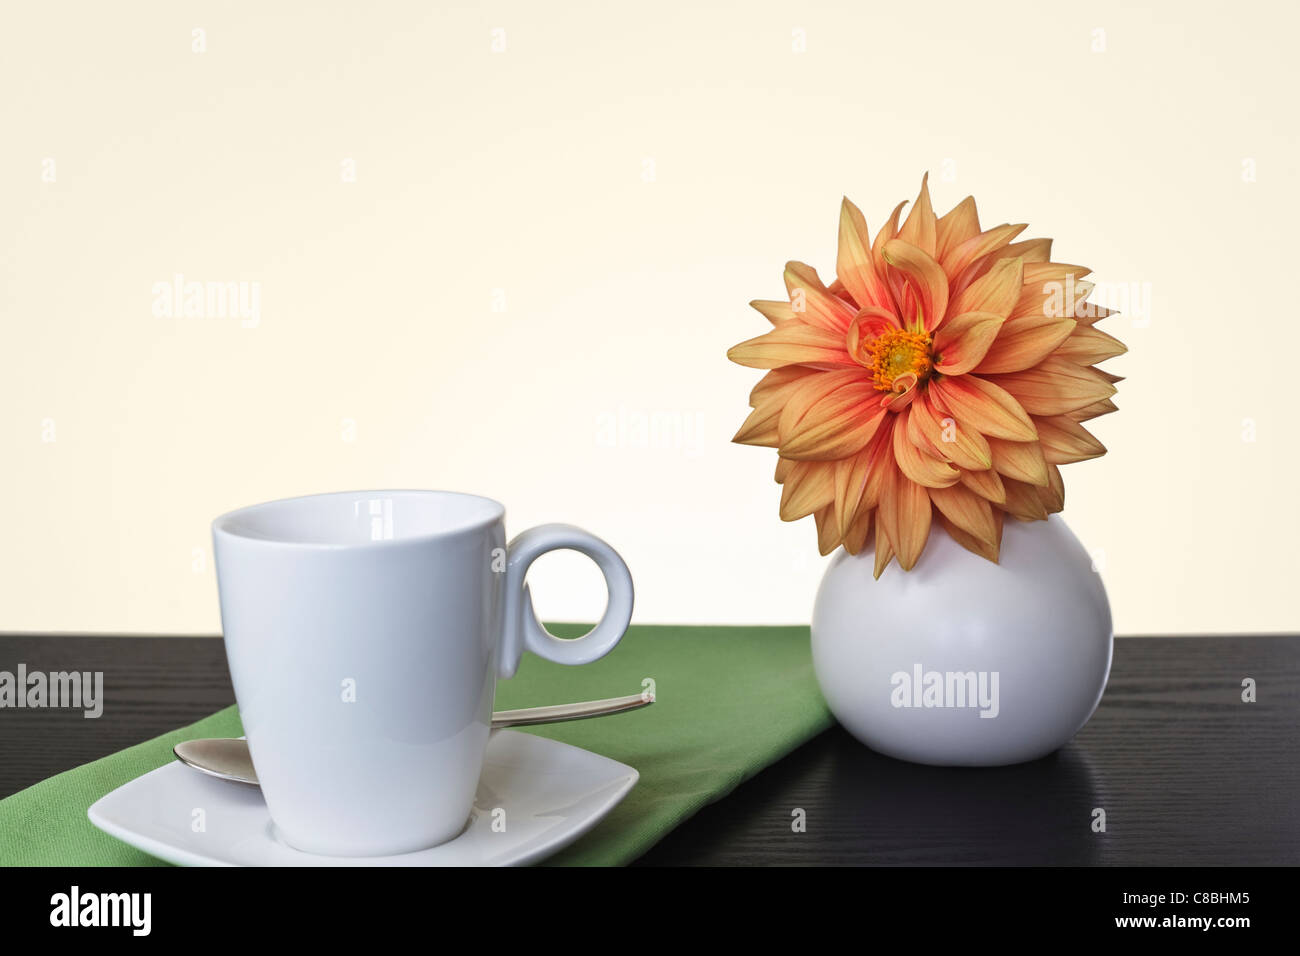 Dahlia in white round Vase with white cup and saucer - Stock Image